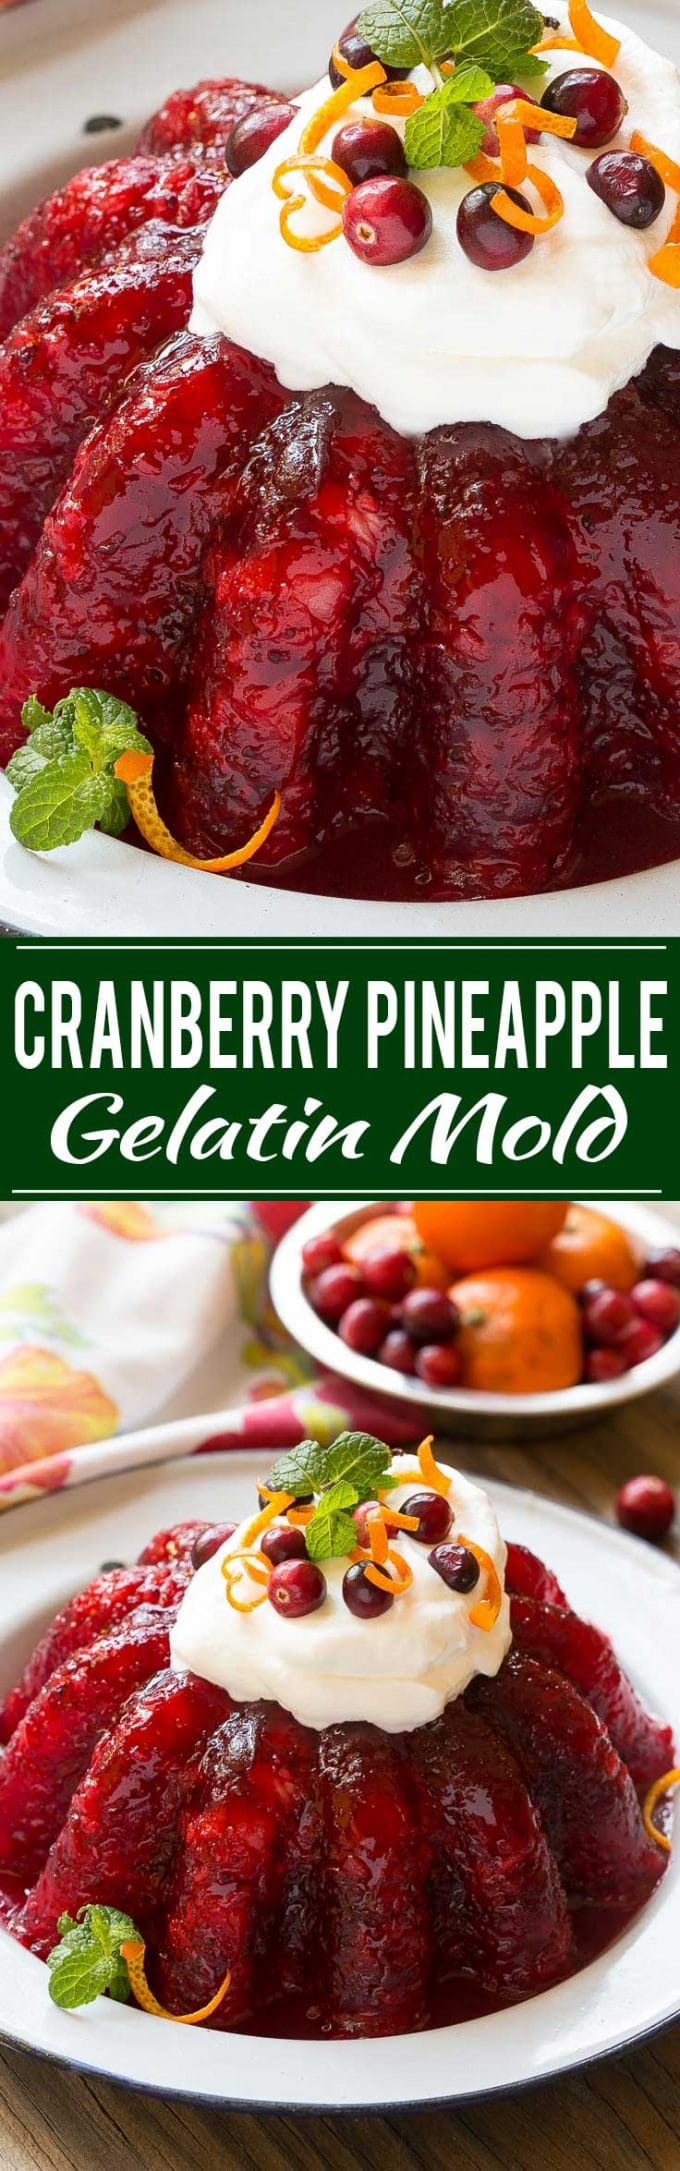 Cranberry Jello Salad Recipe | Cranberry Raspberry Jello | Cranberry Jello | Best Cranberry Jello | Best Cranberry Salad